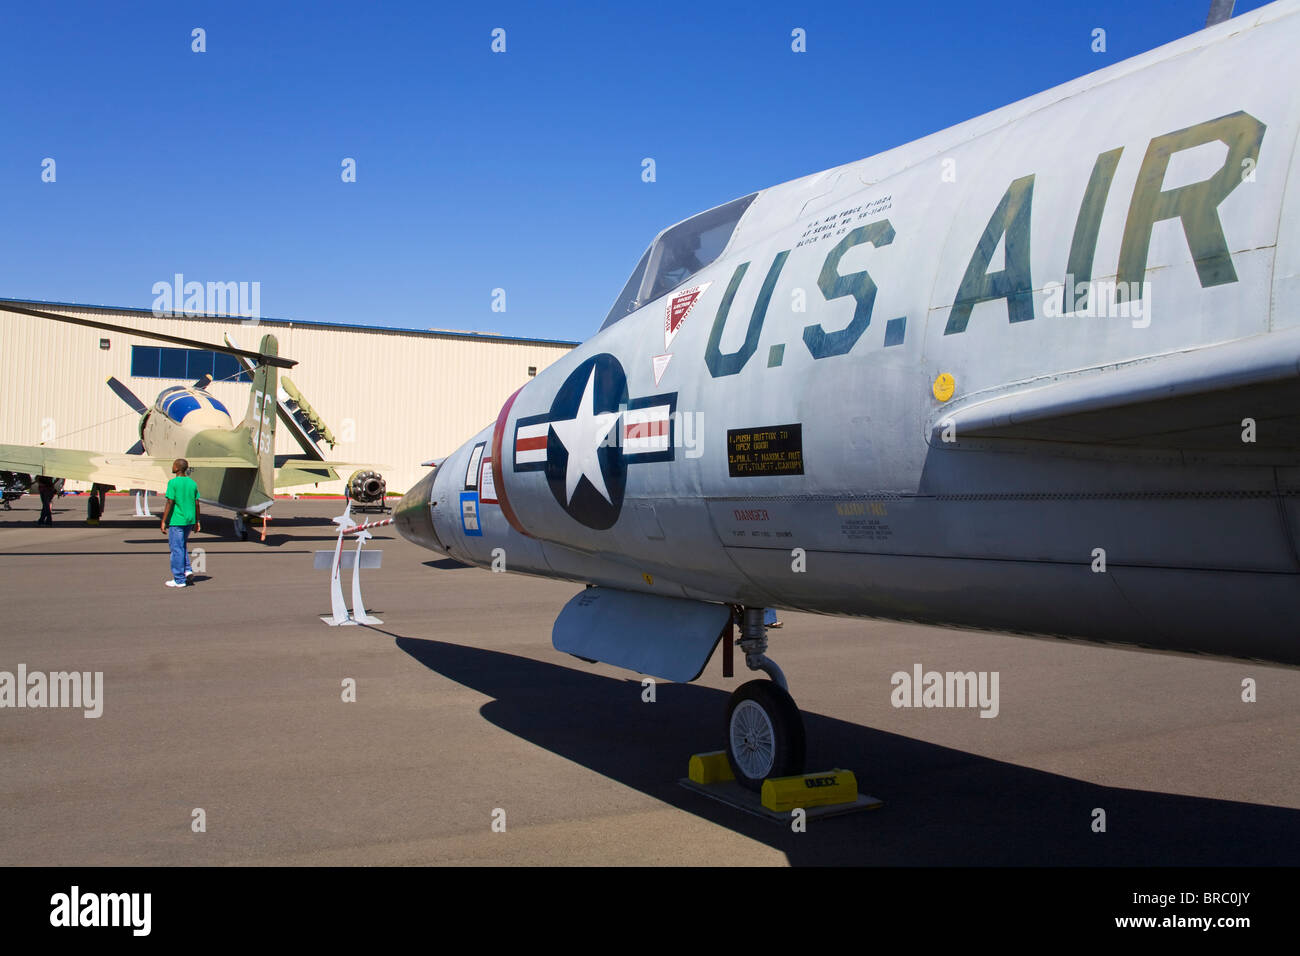 Convair F-102 Delta Dagger at the Aerospace Museum of California, Sacramento, California, USA - Stock Image